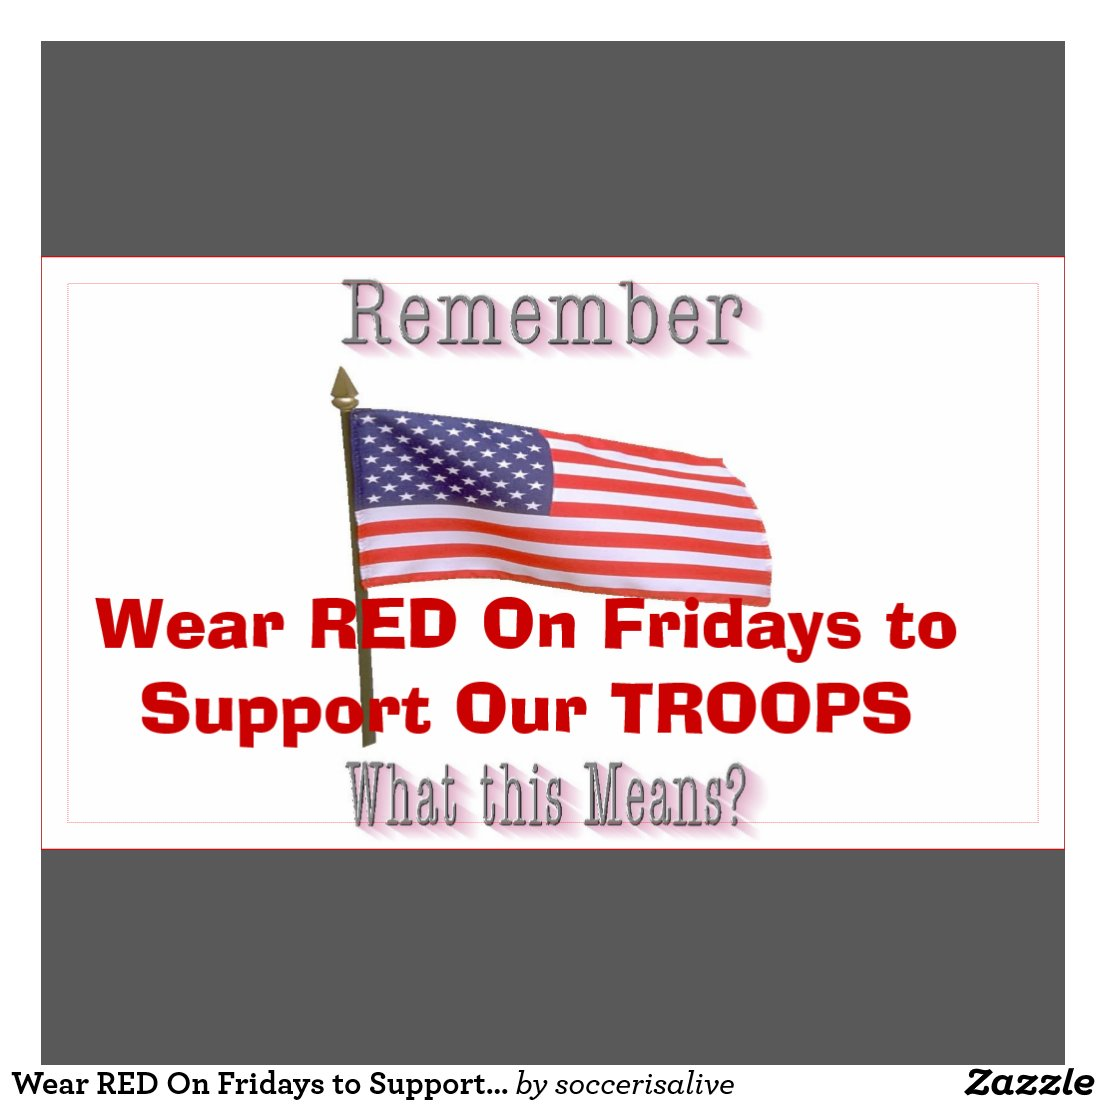 Support Our Troops Wear Red on Fridays Wear Red on Fridays to Support